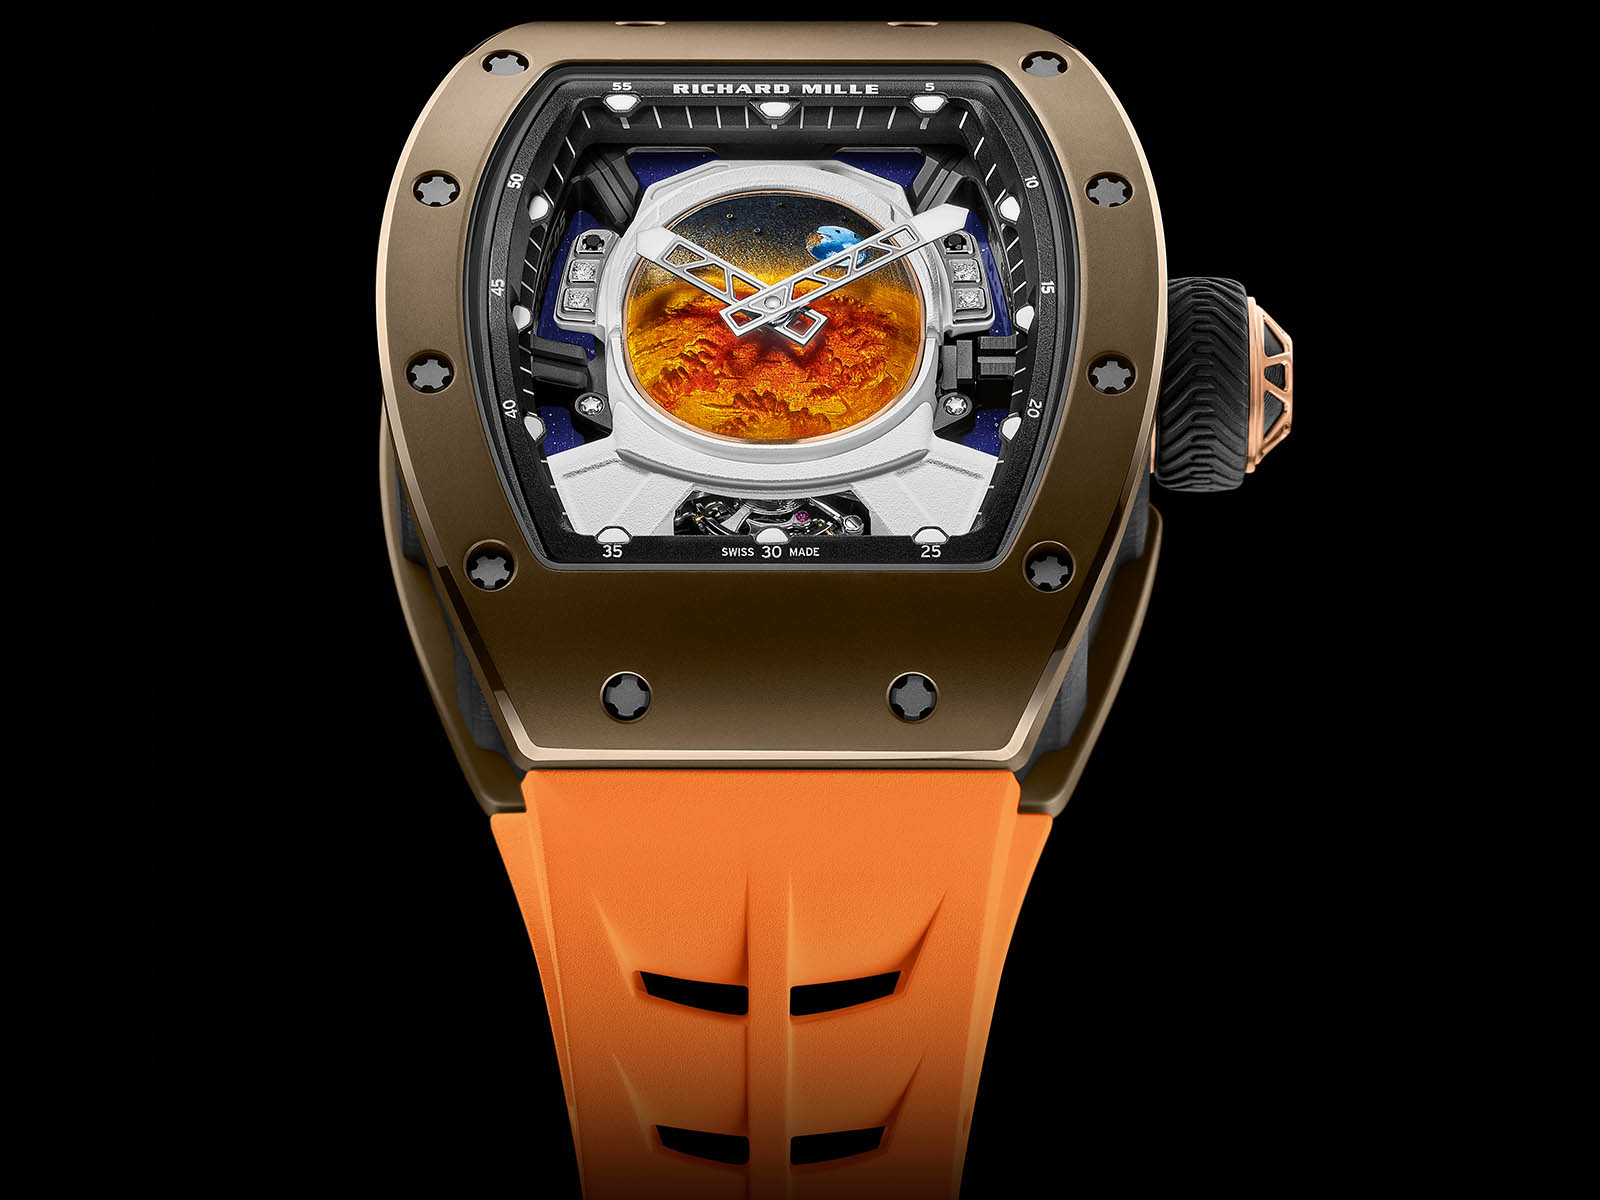 rm-52-05-richard-mille-tourbillon-pharrell-williams-4.jpg